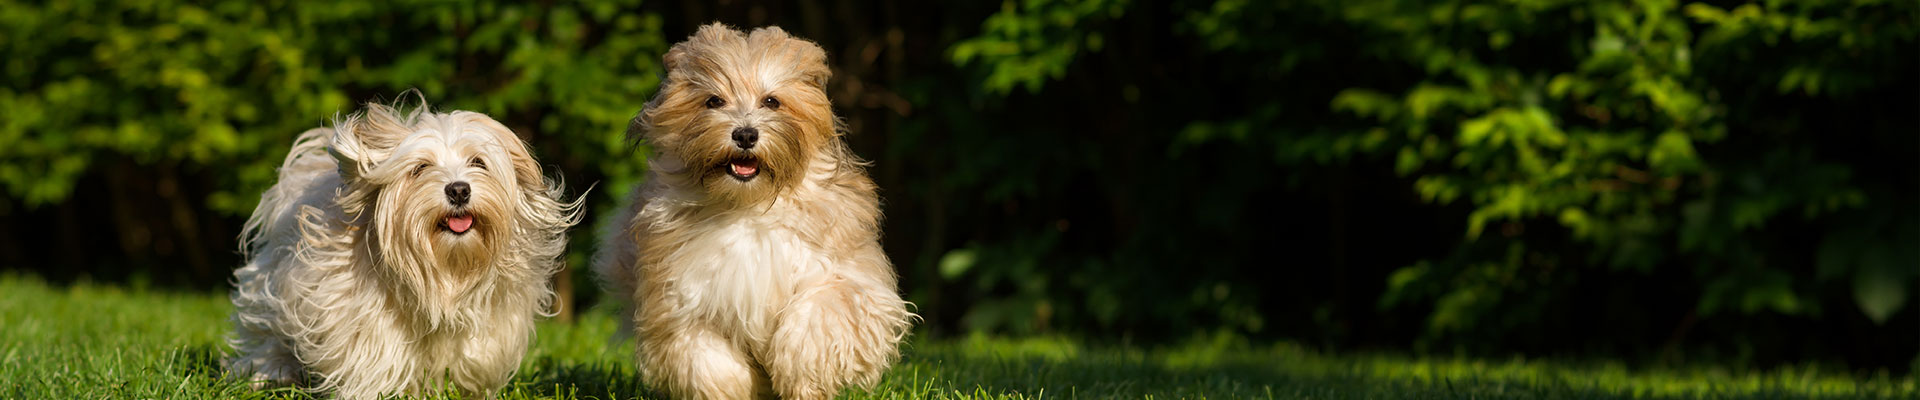 dog boarding rates - The Strutting Pooch